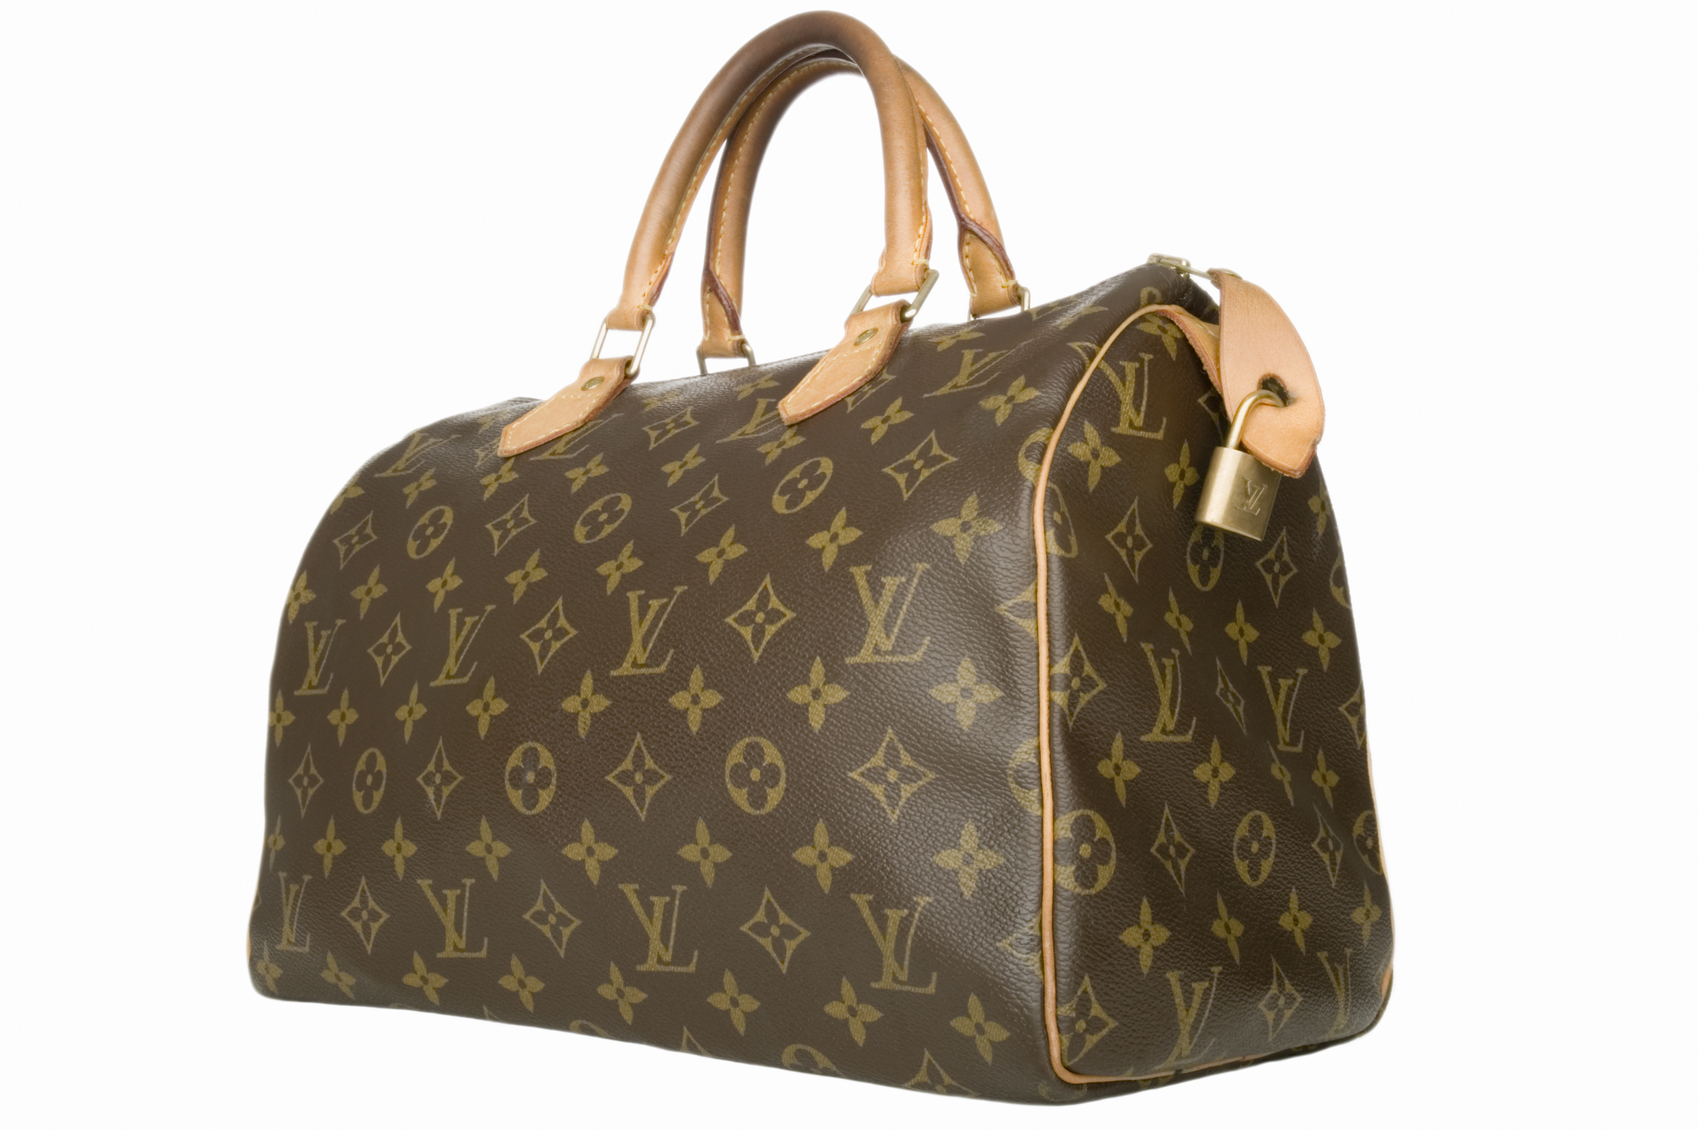 How To Spot A Fake Louis Vuitton Bag